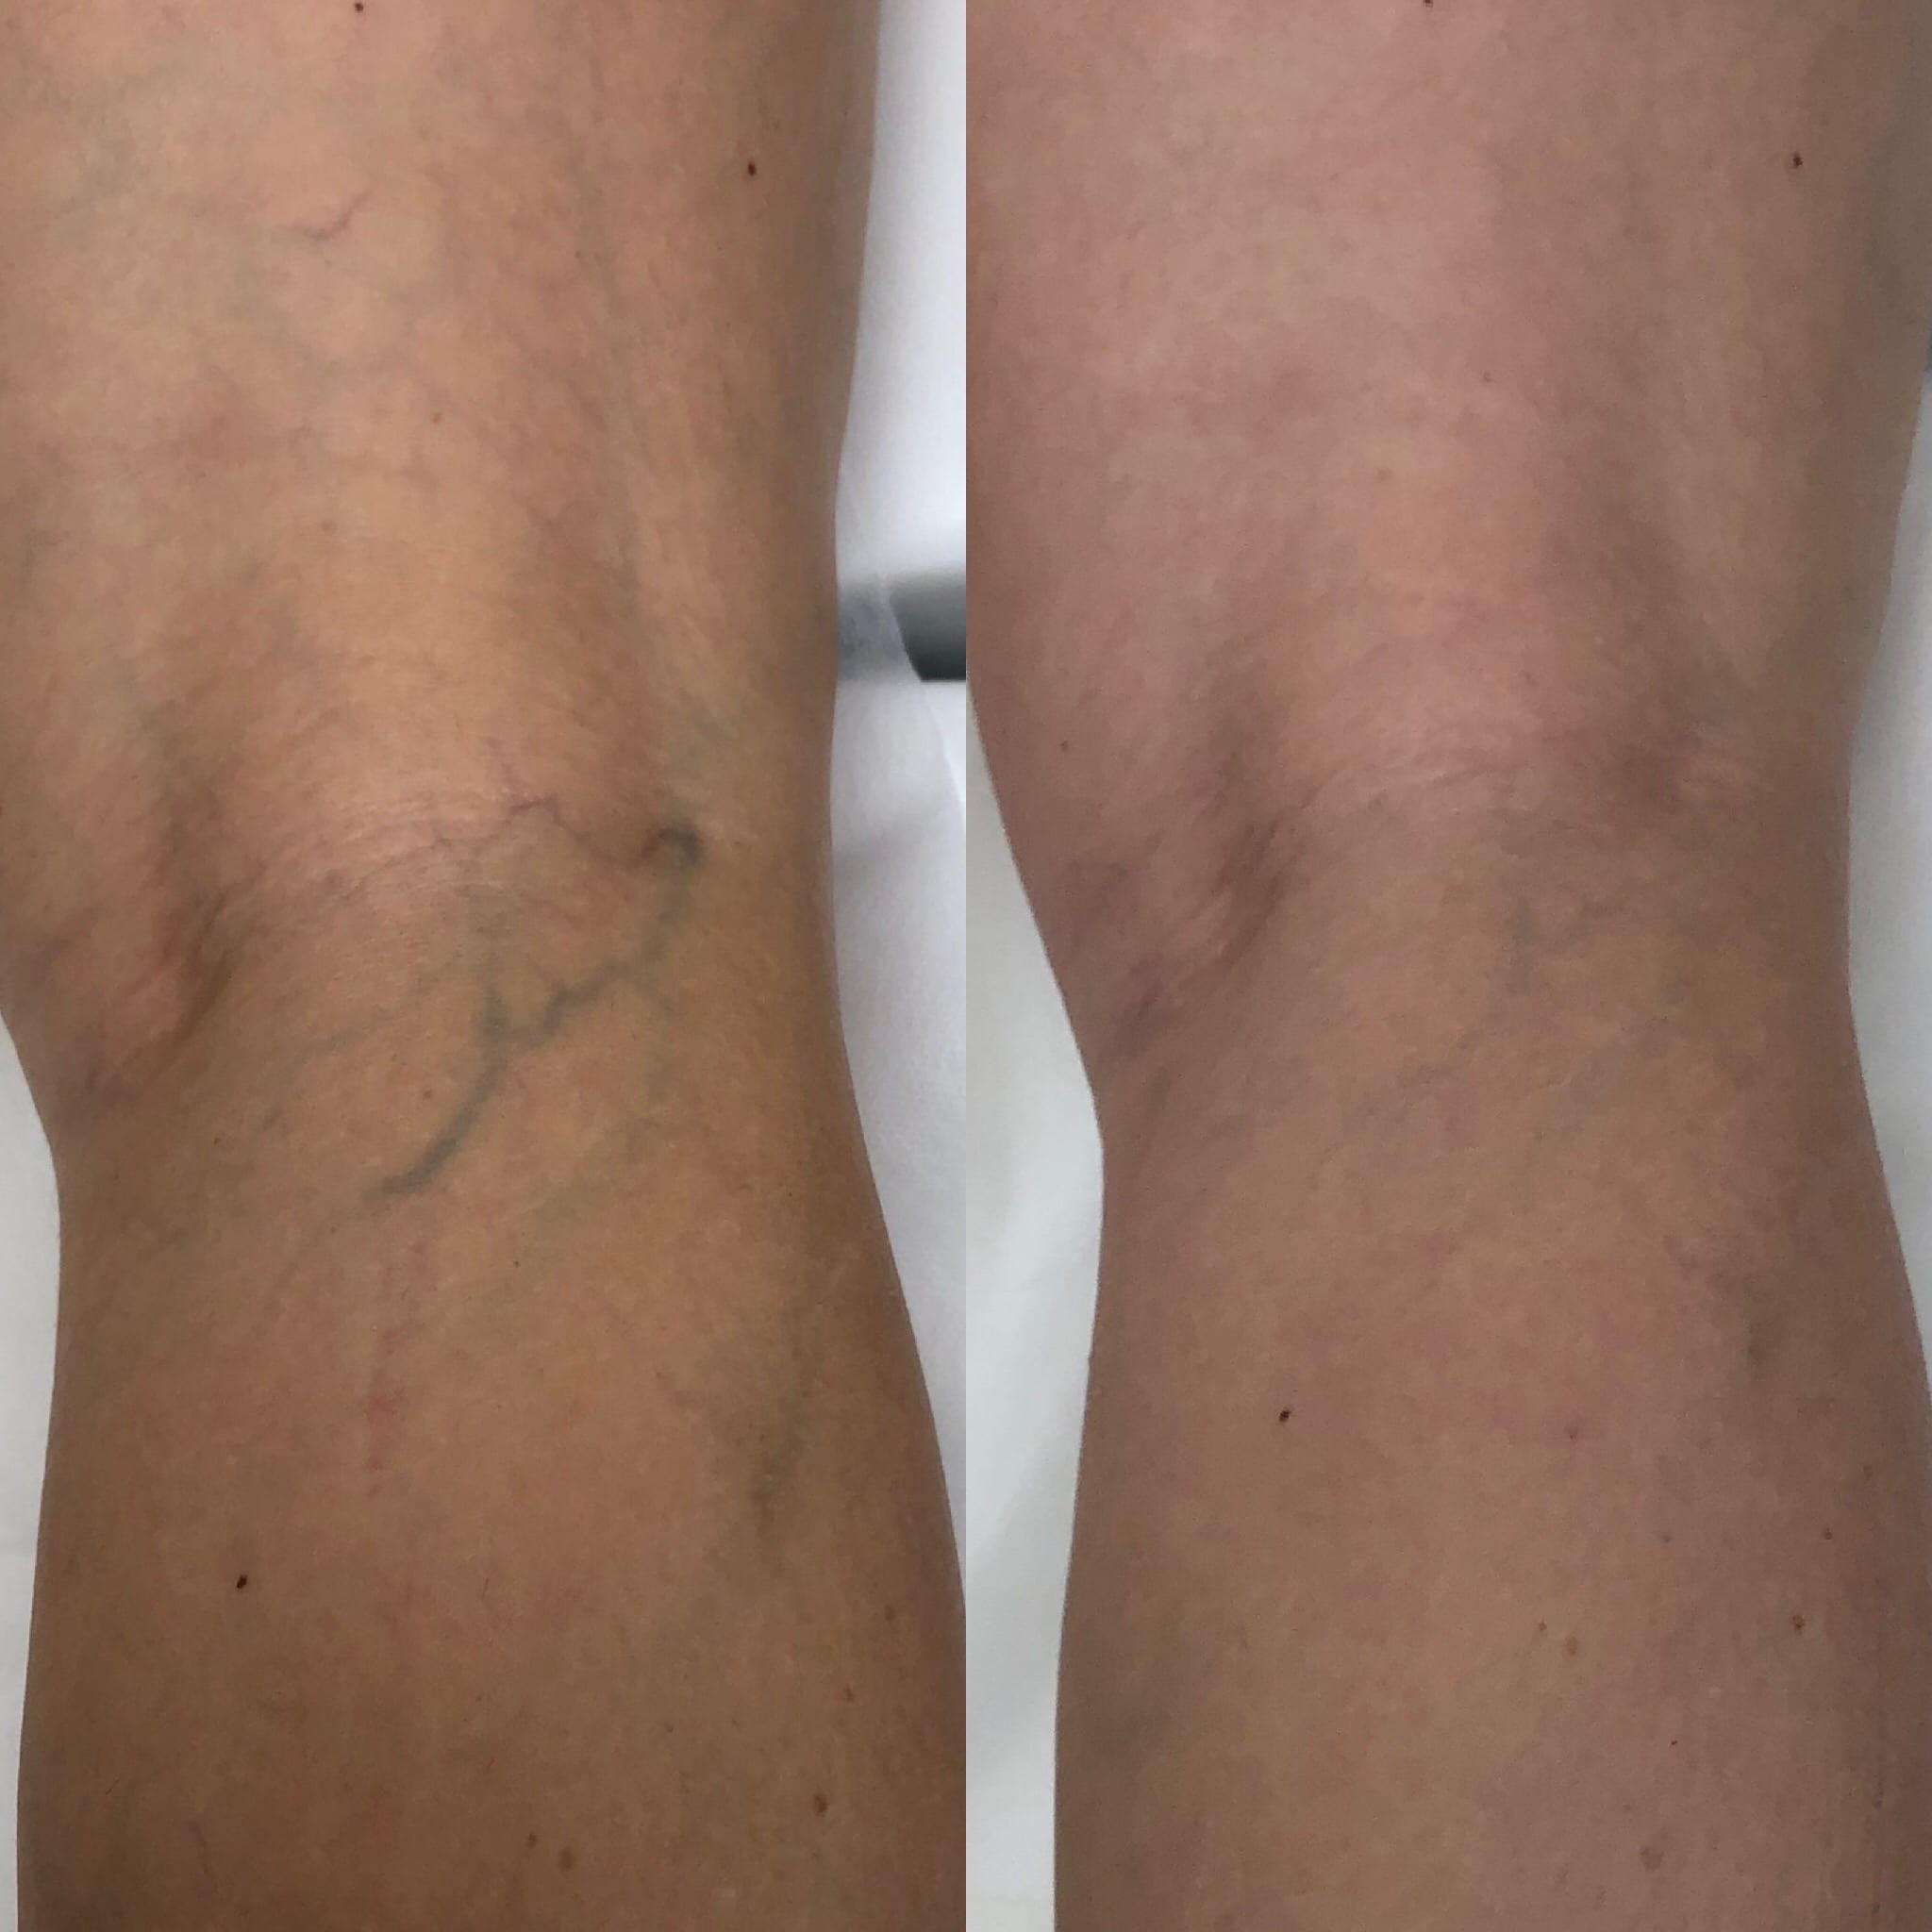 42 y/o Caucasian F after 2 treatments of sclerotherapy to the posterior knee.